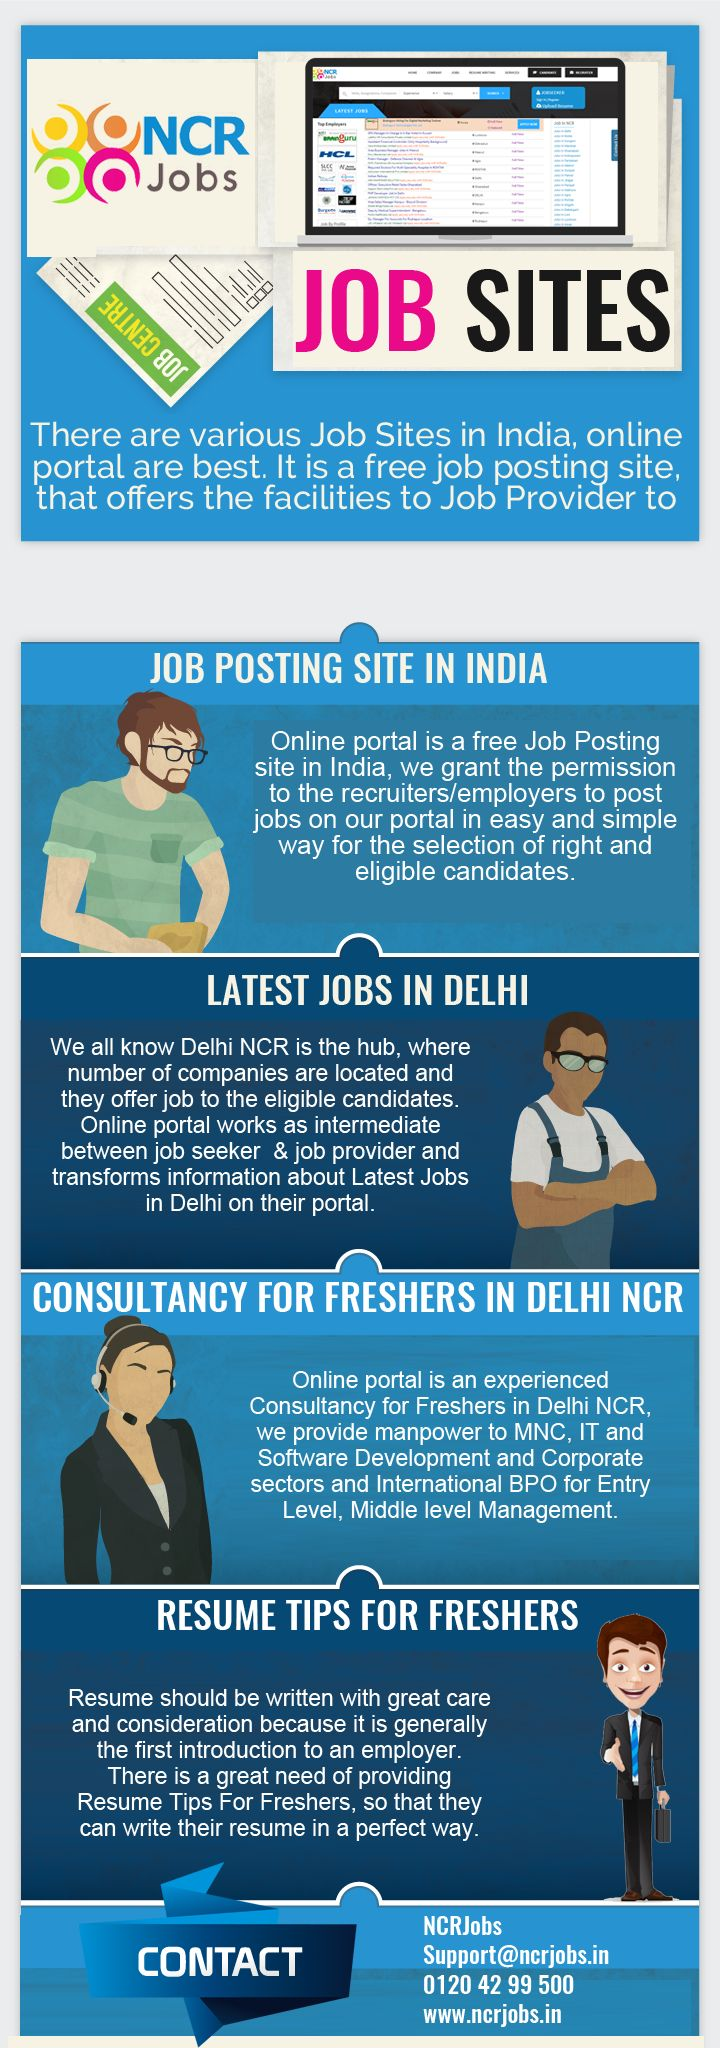 Manager Skills For Resume Word Fun Best Sites To Post Resume  Best Job Boards For Recruiters  Nurse Resume Samples Excel with How To List A Reference On A Resume Excel There Are Various Job Sites In India Online Portal Are Best It Is A Best  Employment Sites Best Job Sites To Post Your Resume  Retail Skills For Resume Pdf